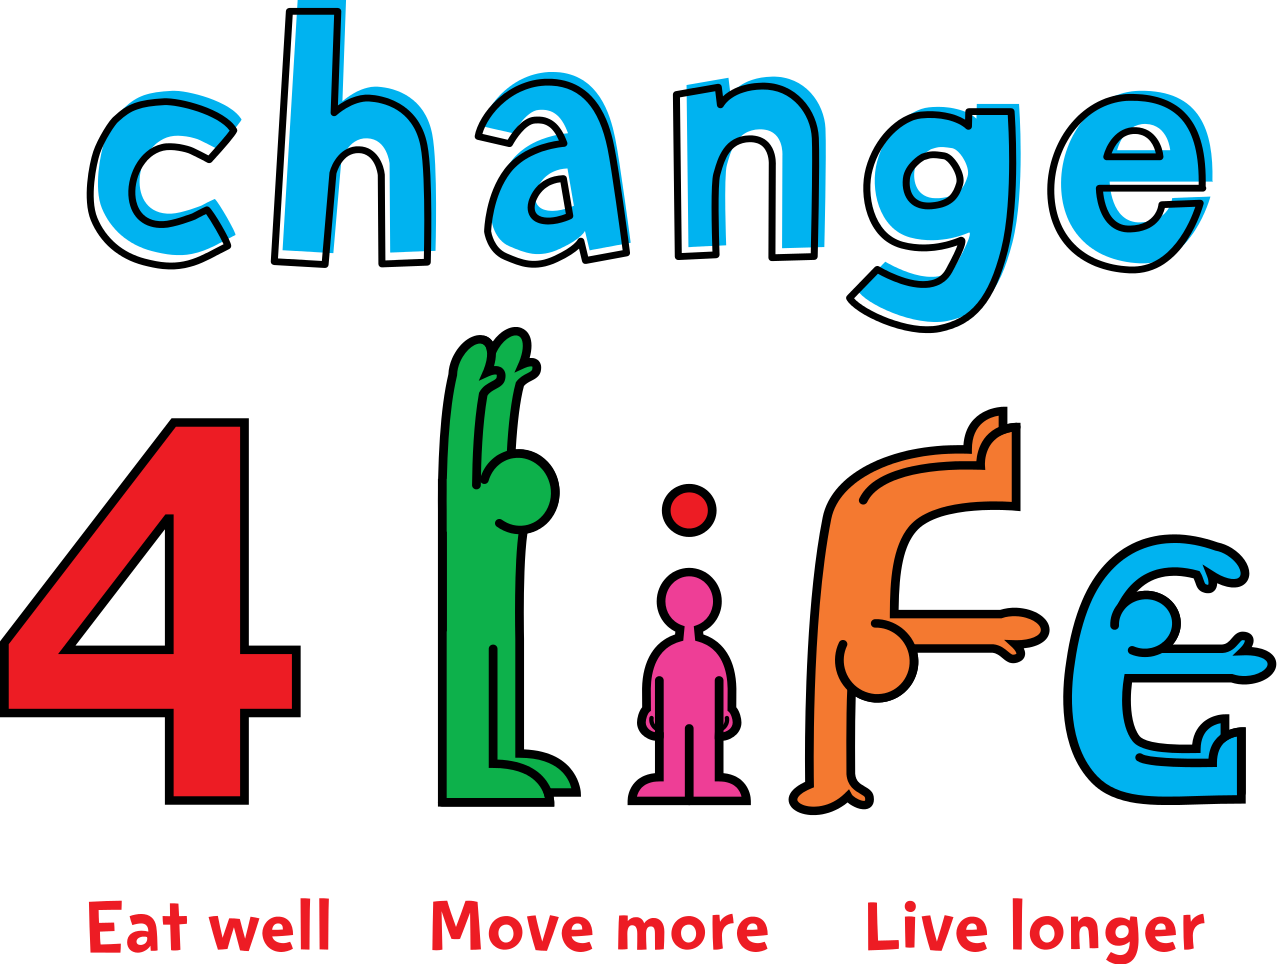 Life clipart lifestyle. Free health animations download